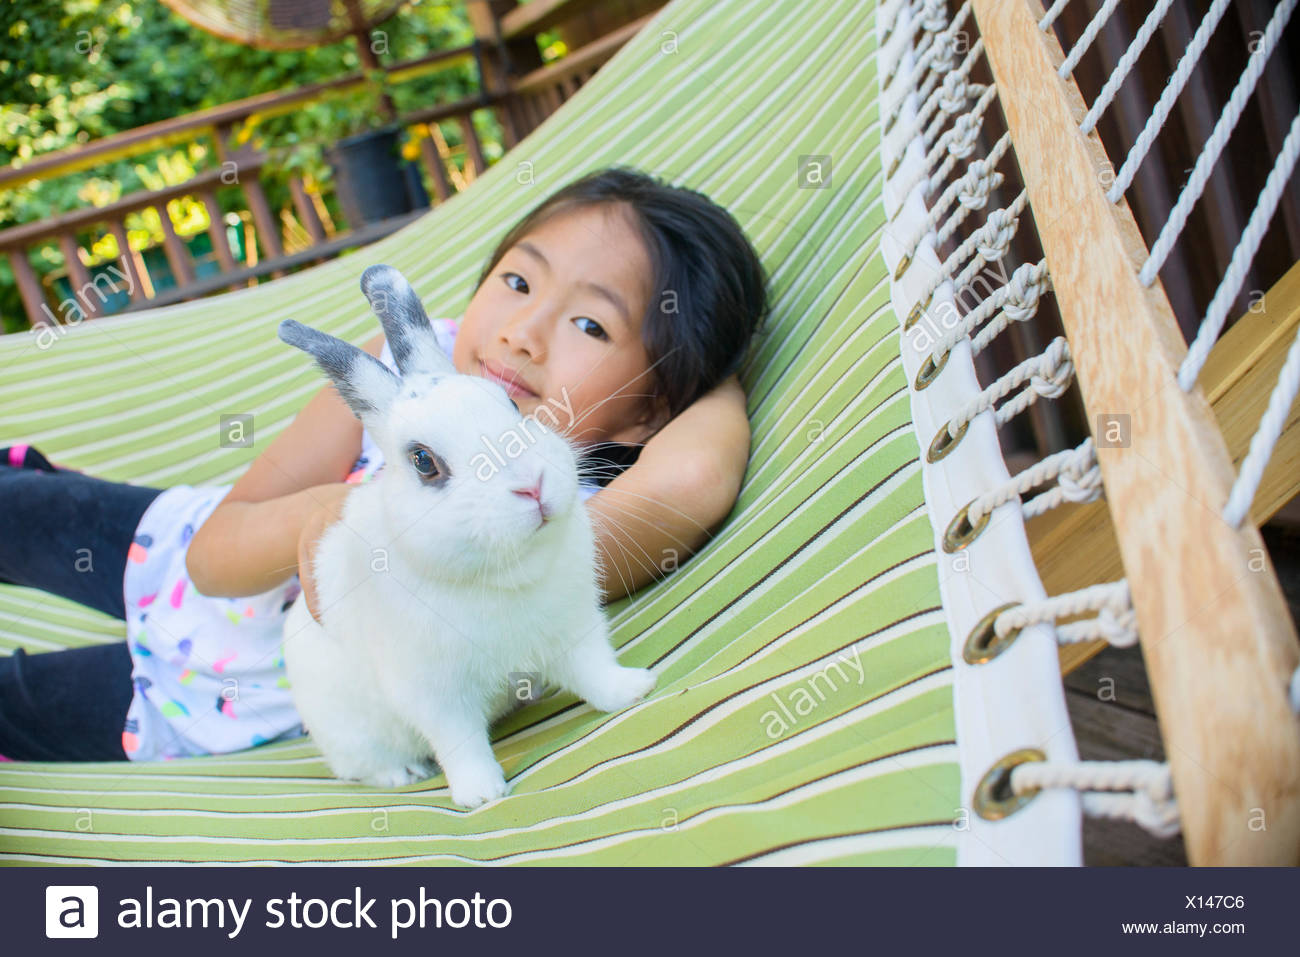 Young asian girl on hammock with pet rabbit - Stock Image